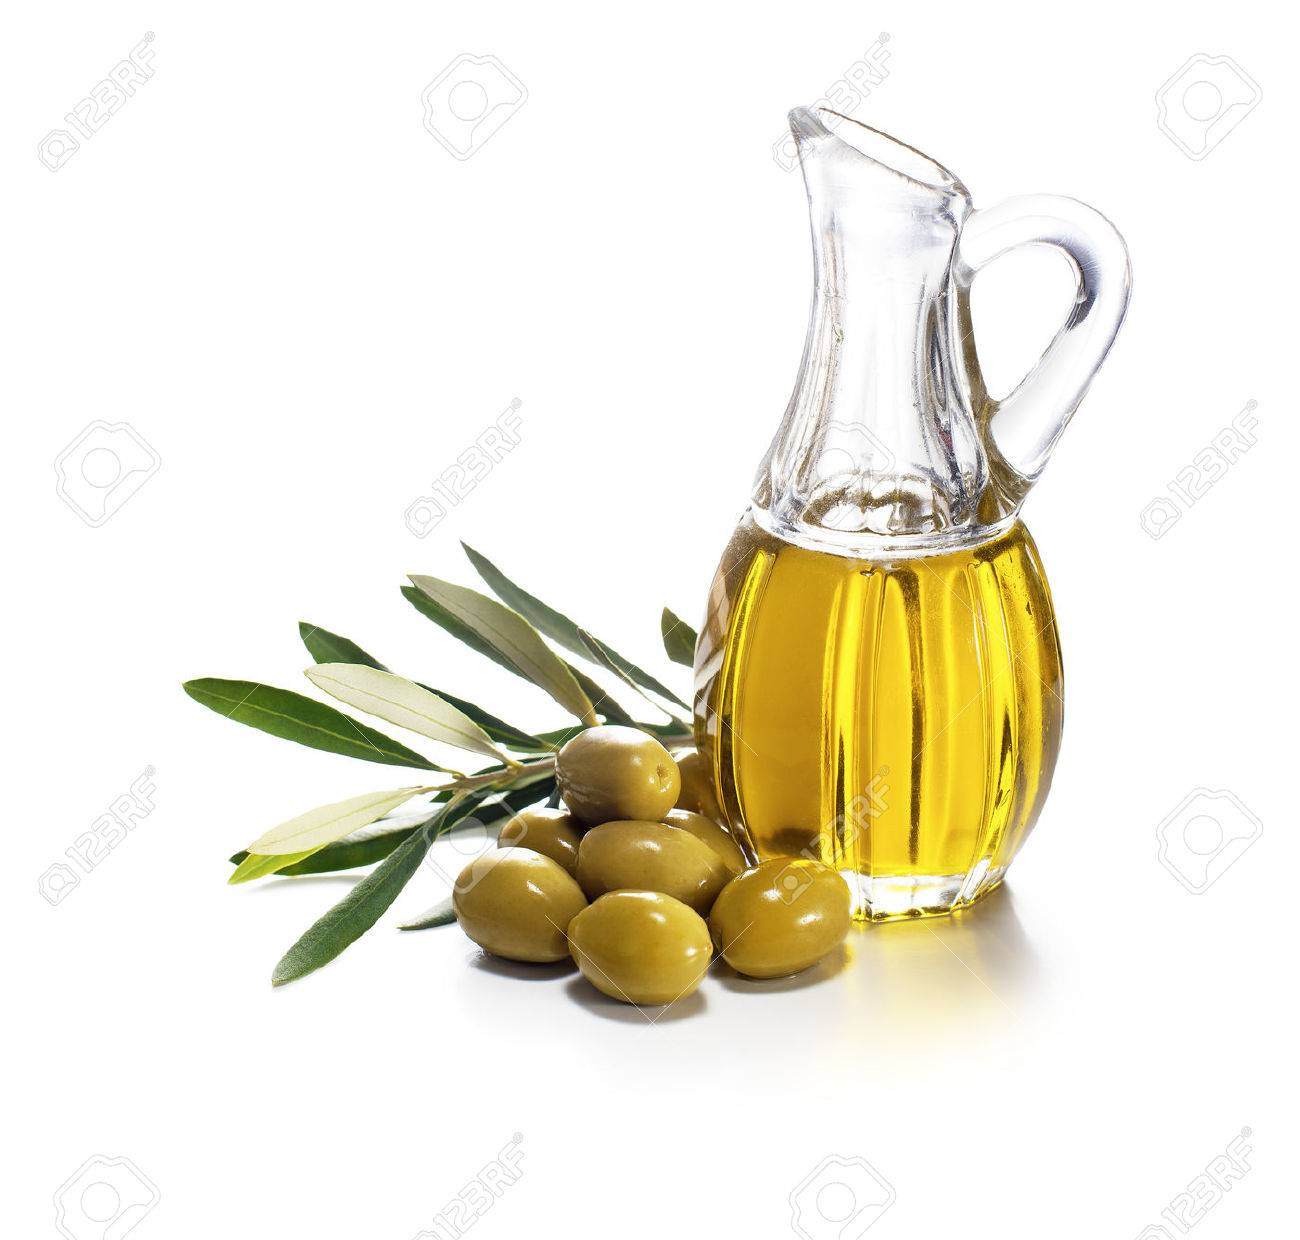 Olive oil and olive branch on white background - 36957076